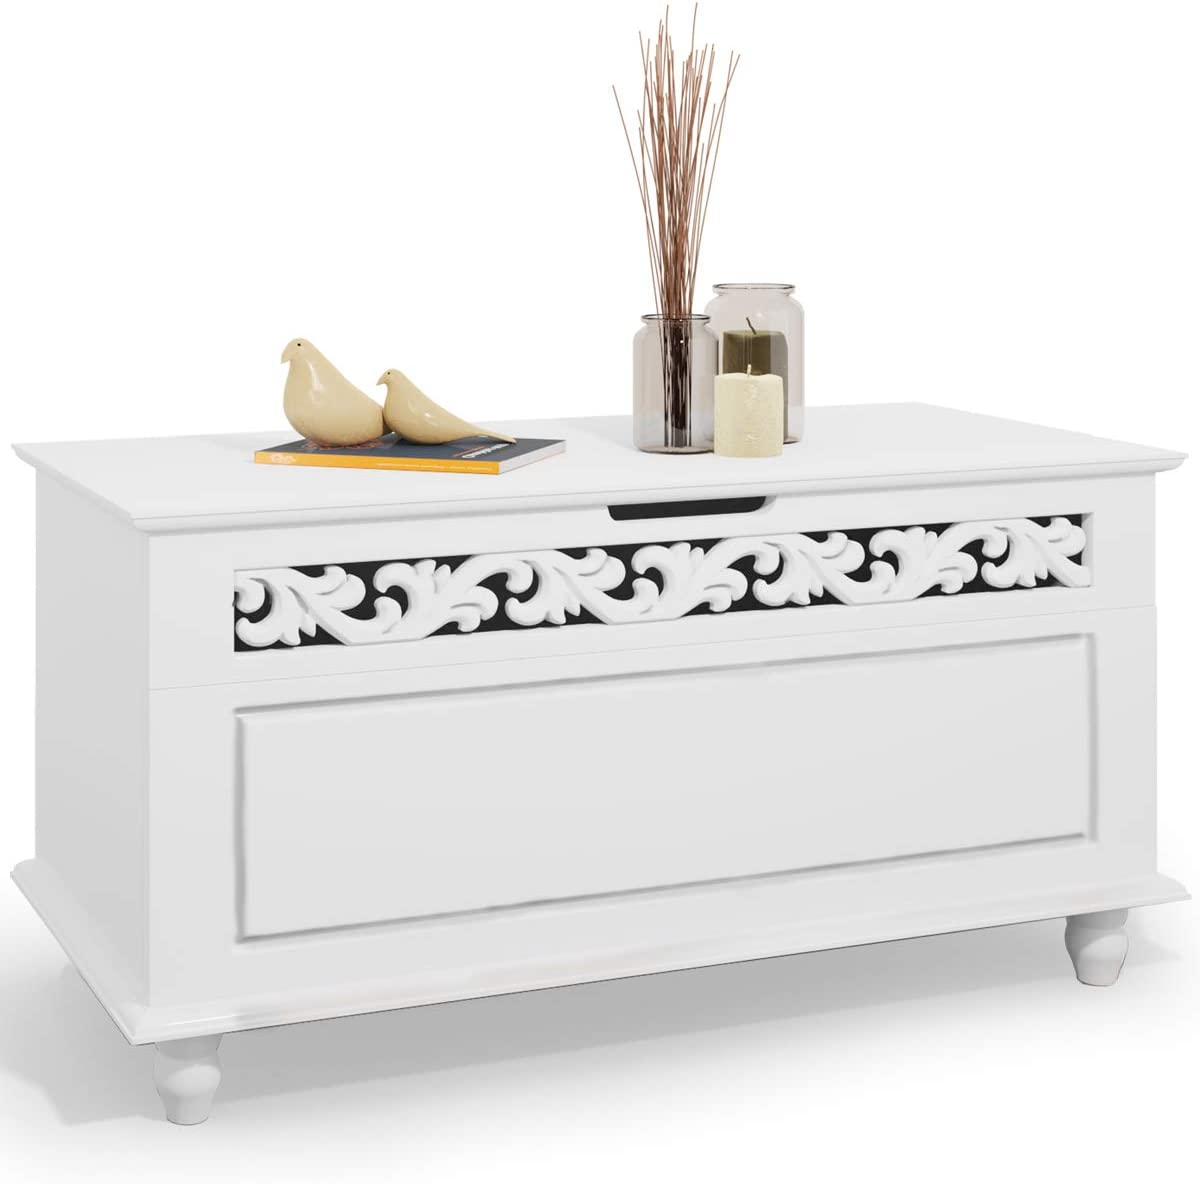 Deuba Wooden Storage Chest »Jersey« Blanket Trunk White Toy Box Large Bench Ottoman with Lid